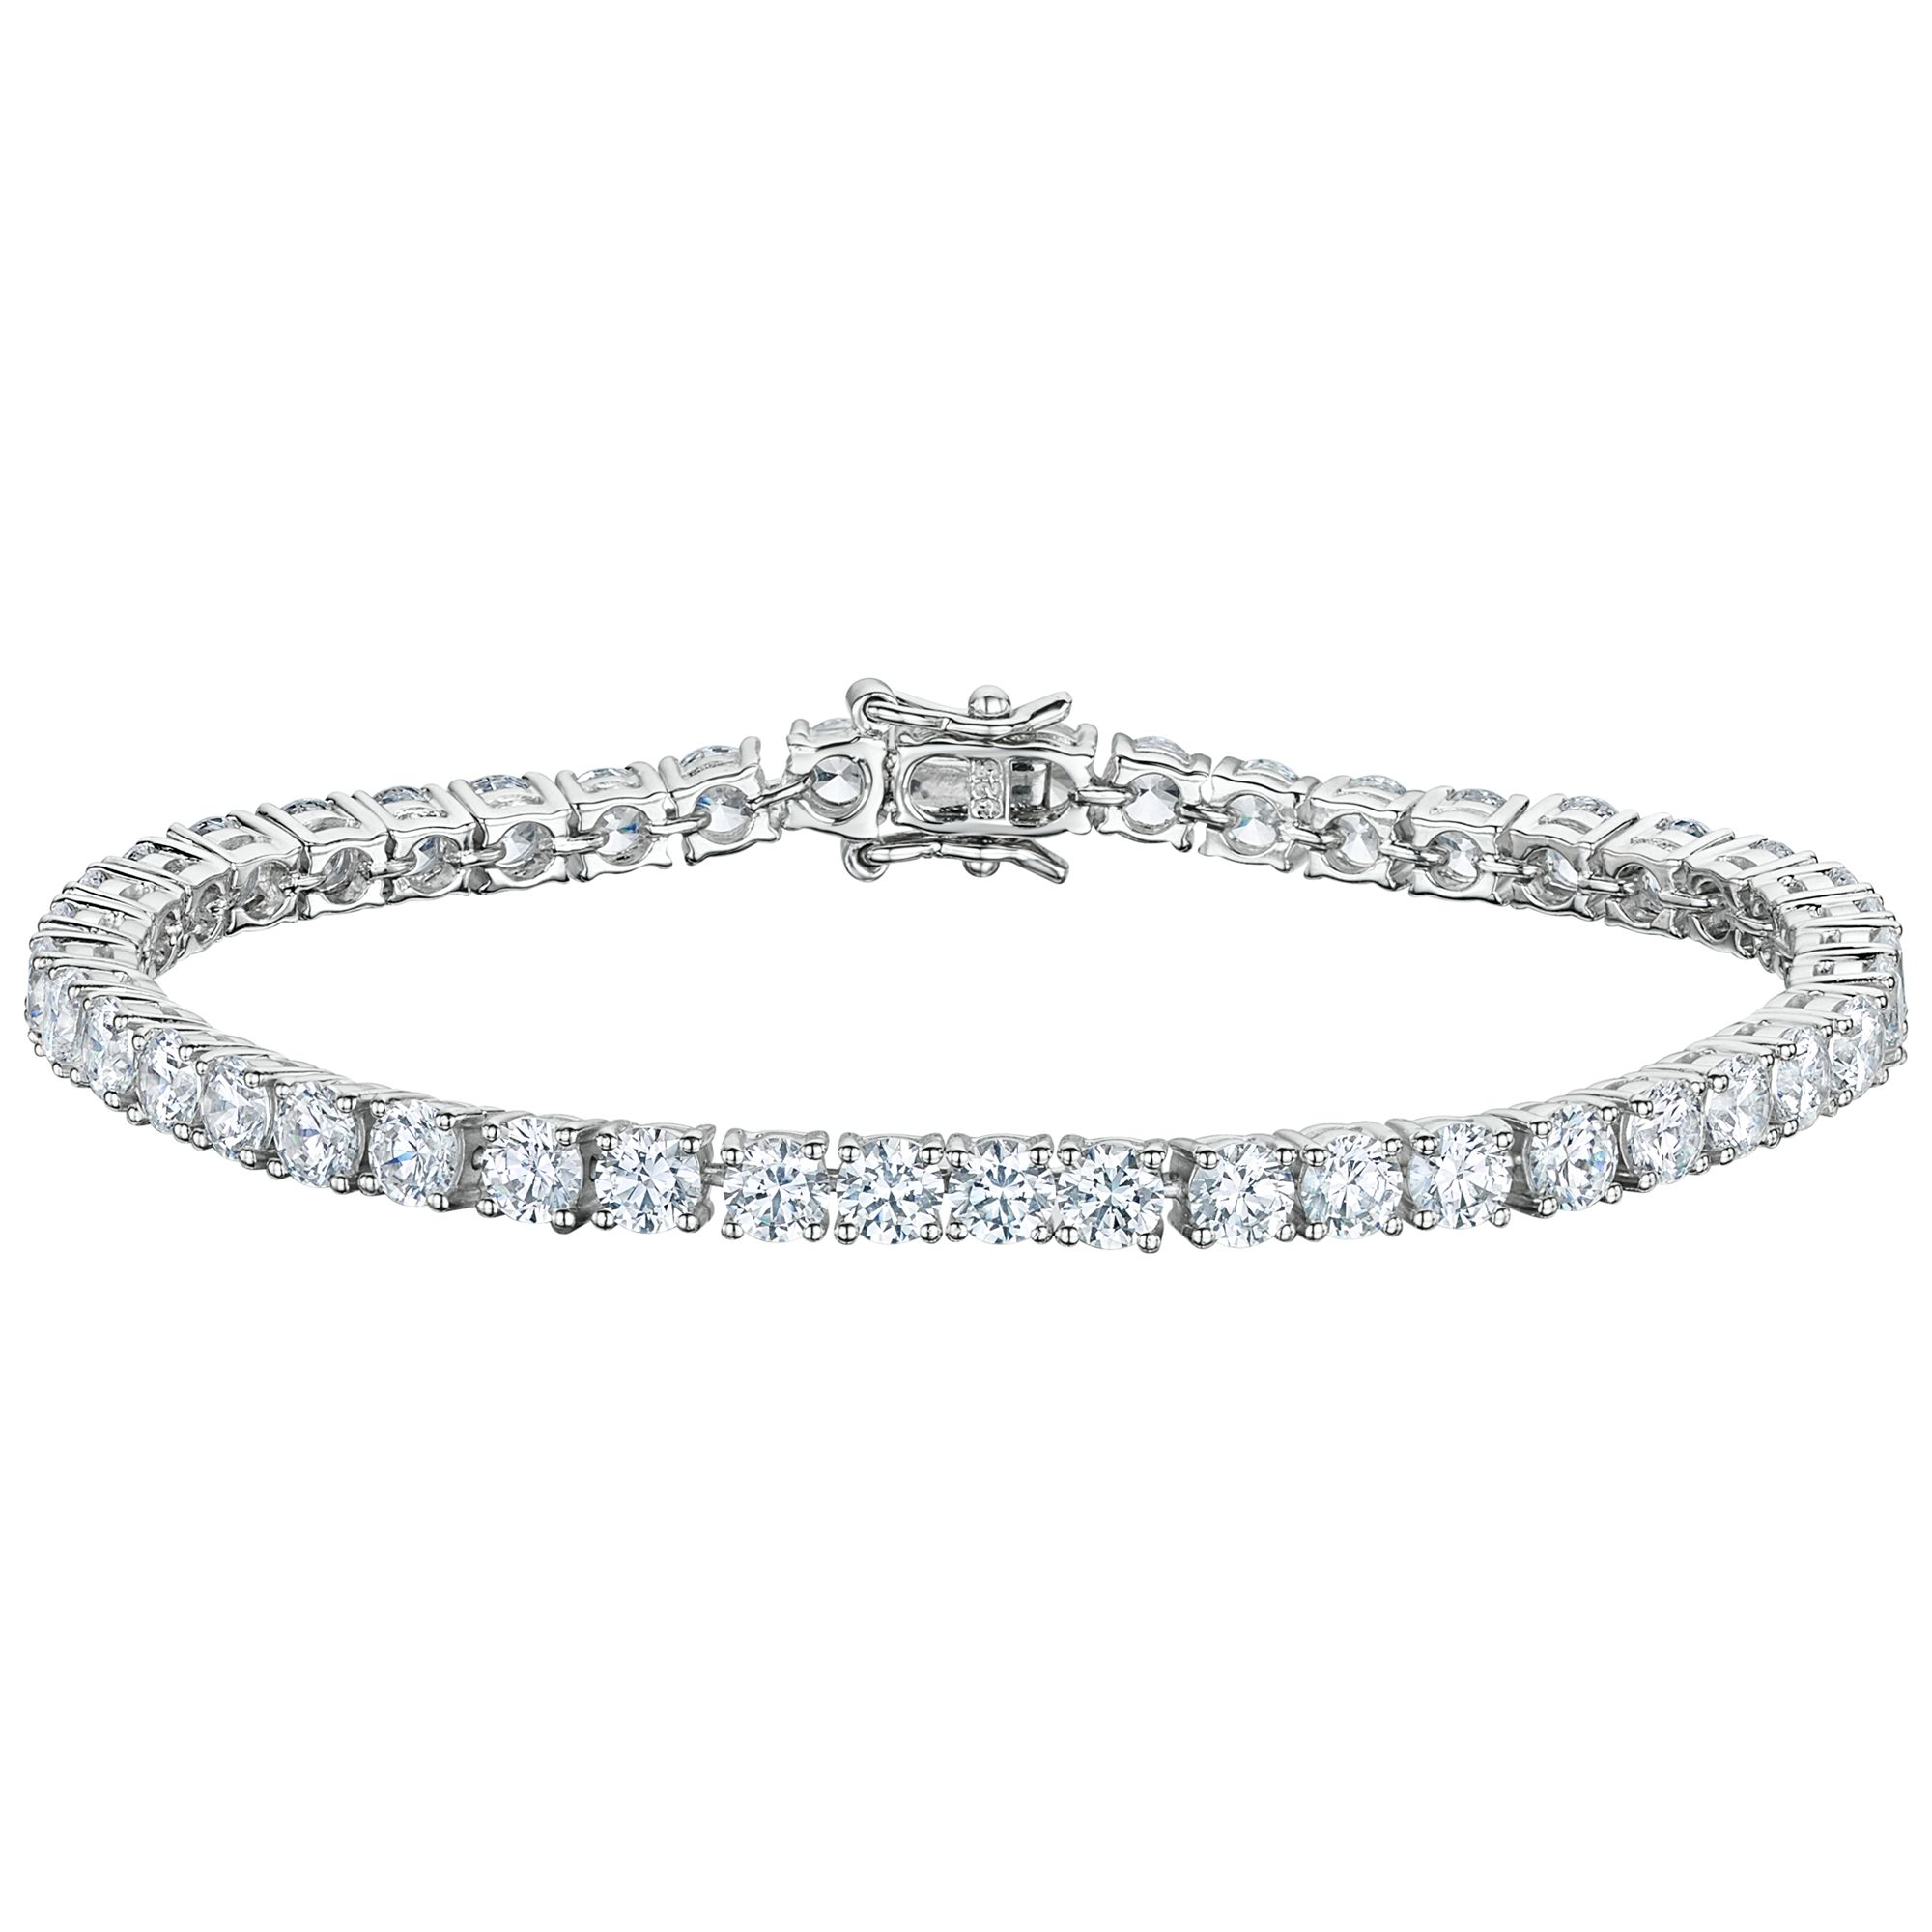 Jools By Jenny Brown Round Tennis Bracelet At John Lewis Partners